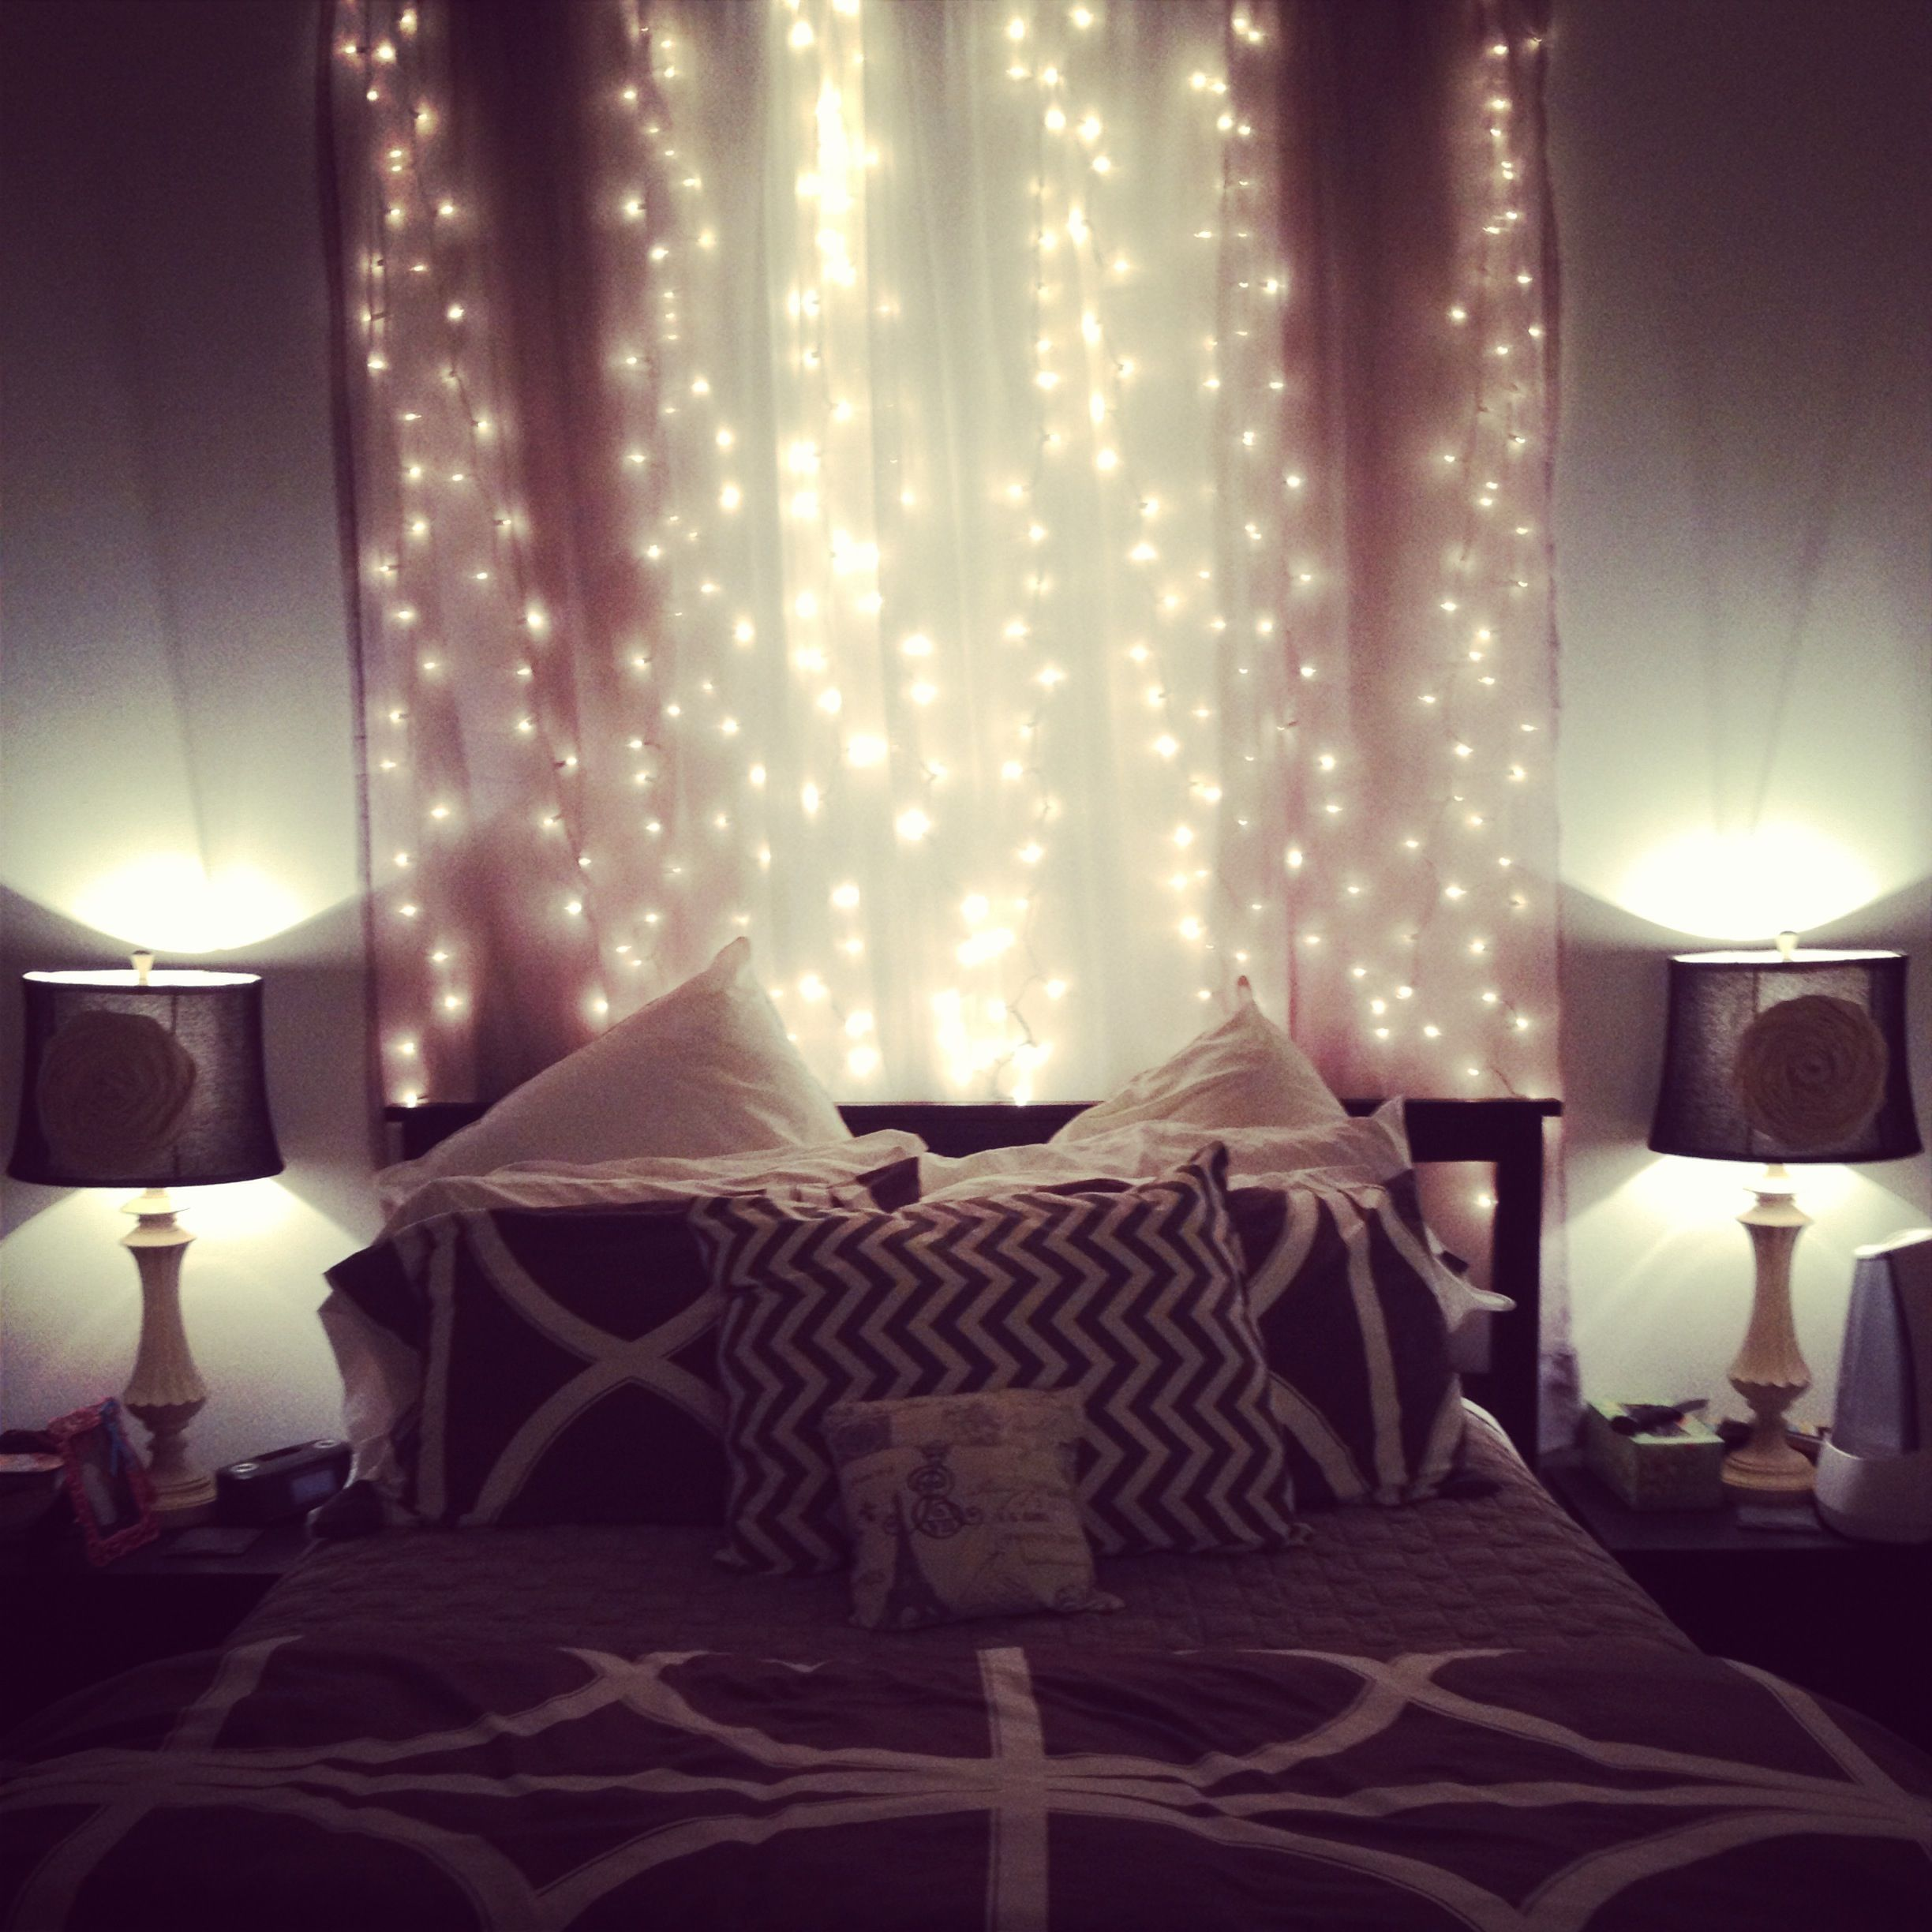 Cosy bedroom fairy lights - Fairy Lights In The Bedroom